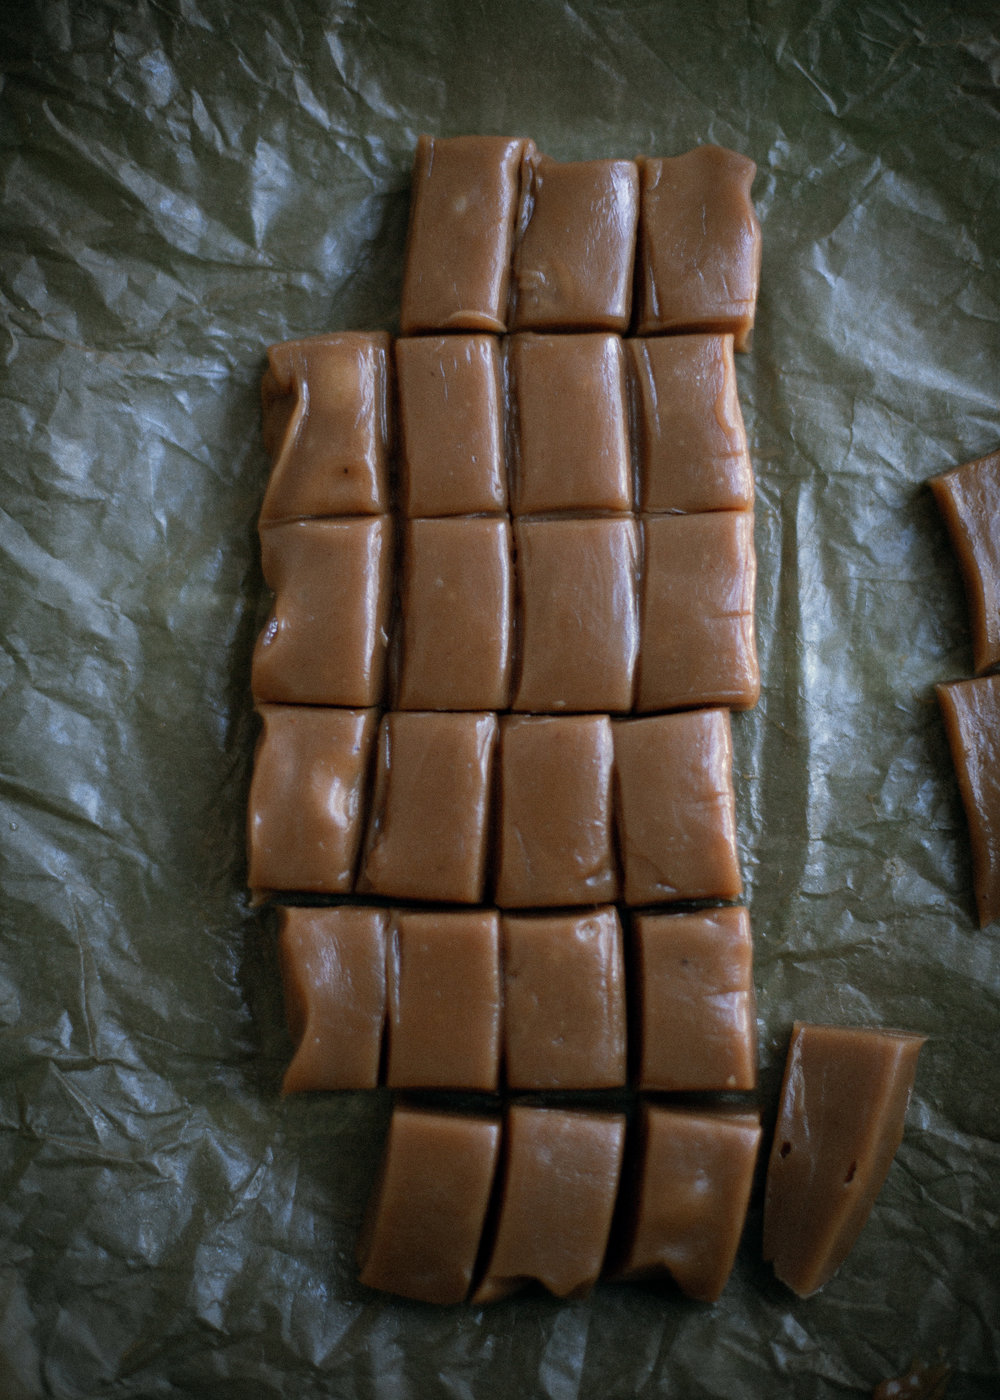 The softest homemade caramel candies, orange flavored with McCormick extract | from scratch mostly, blog